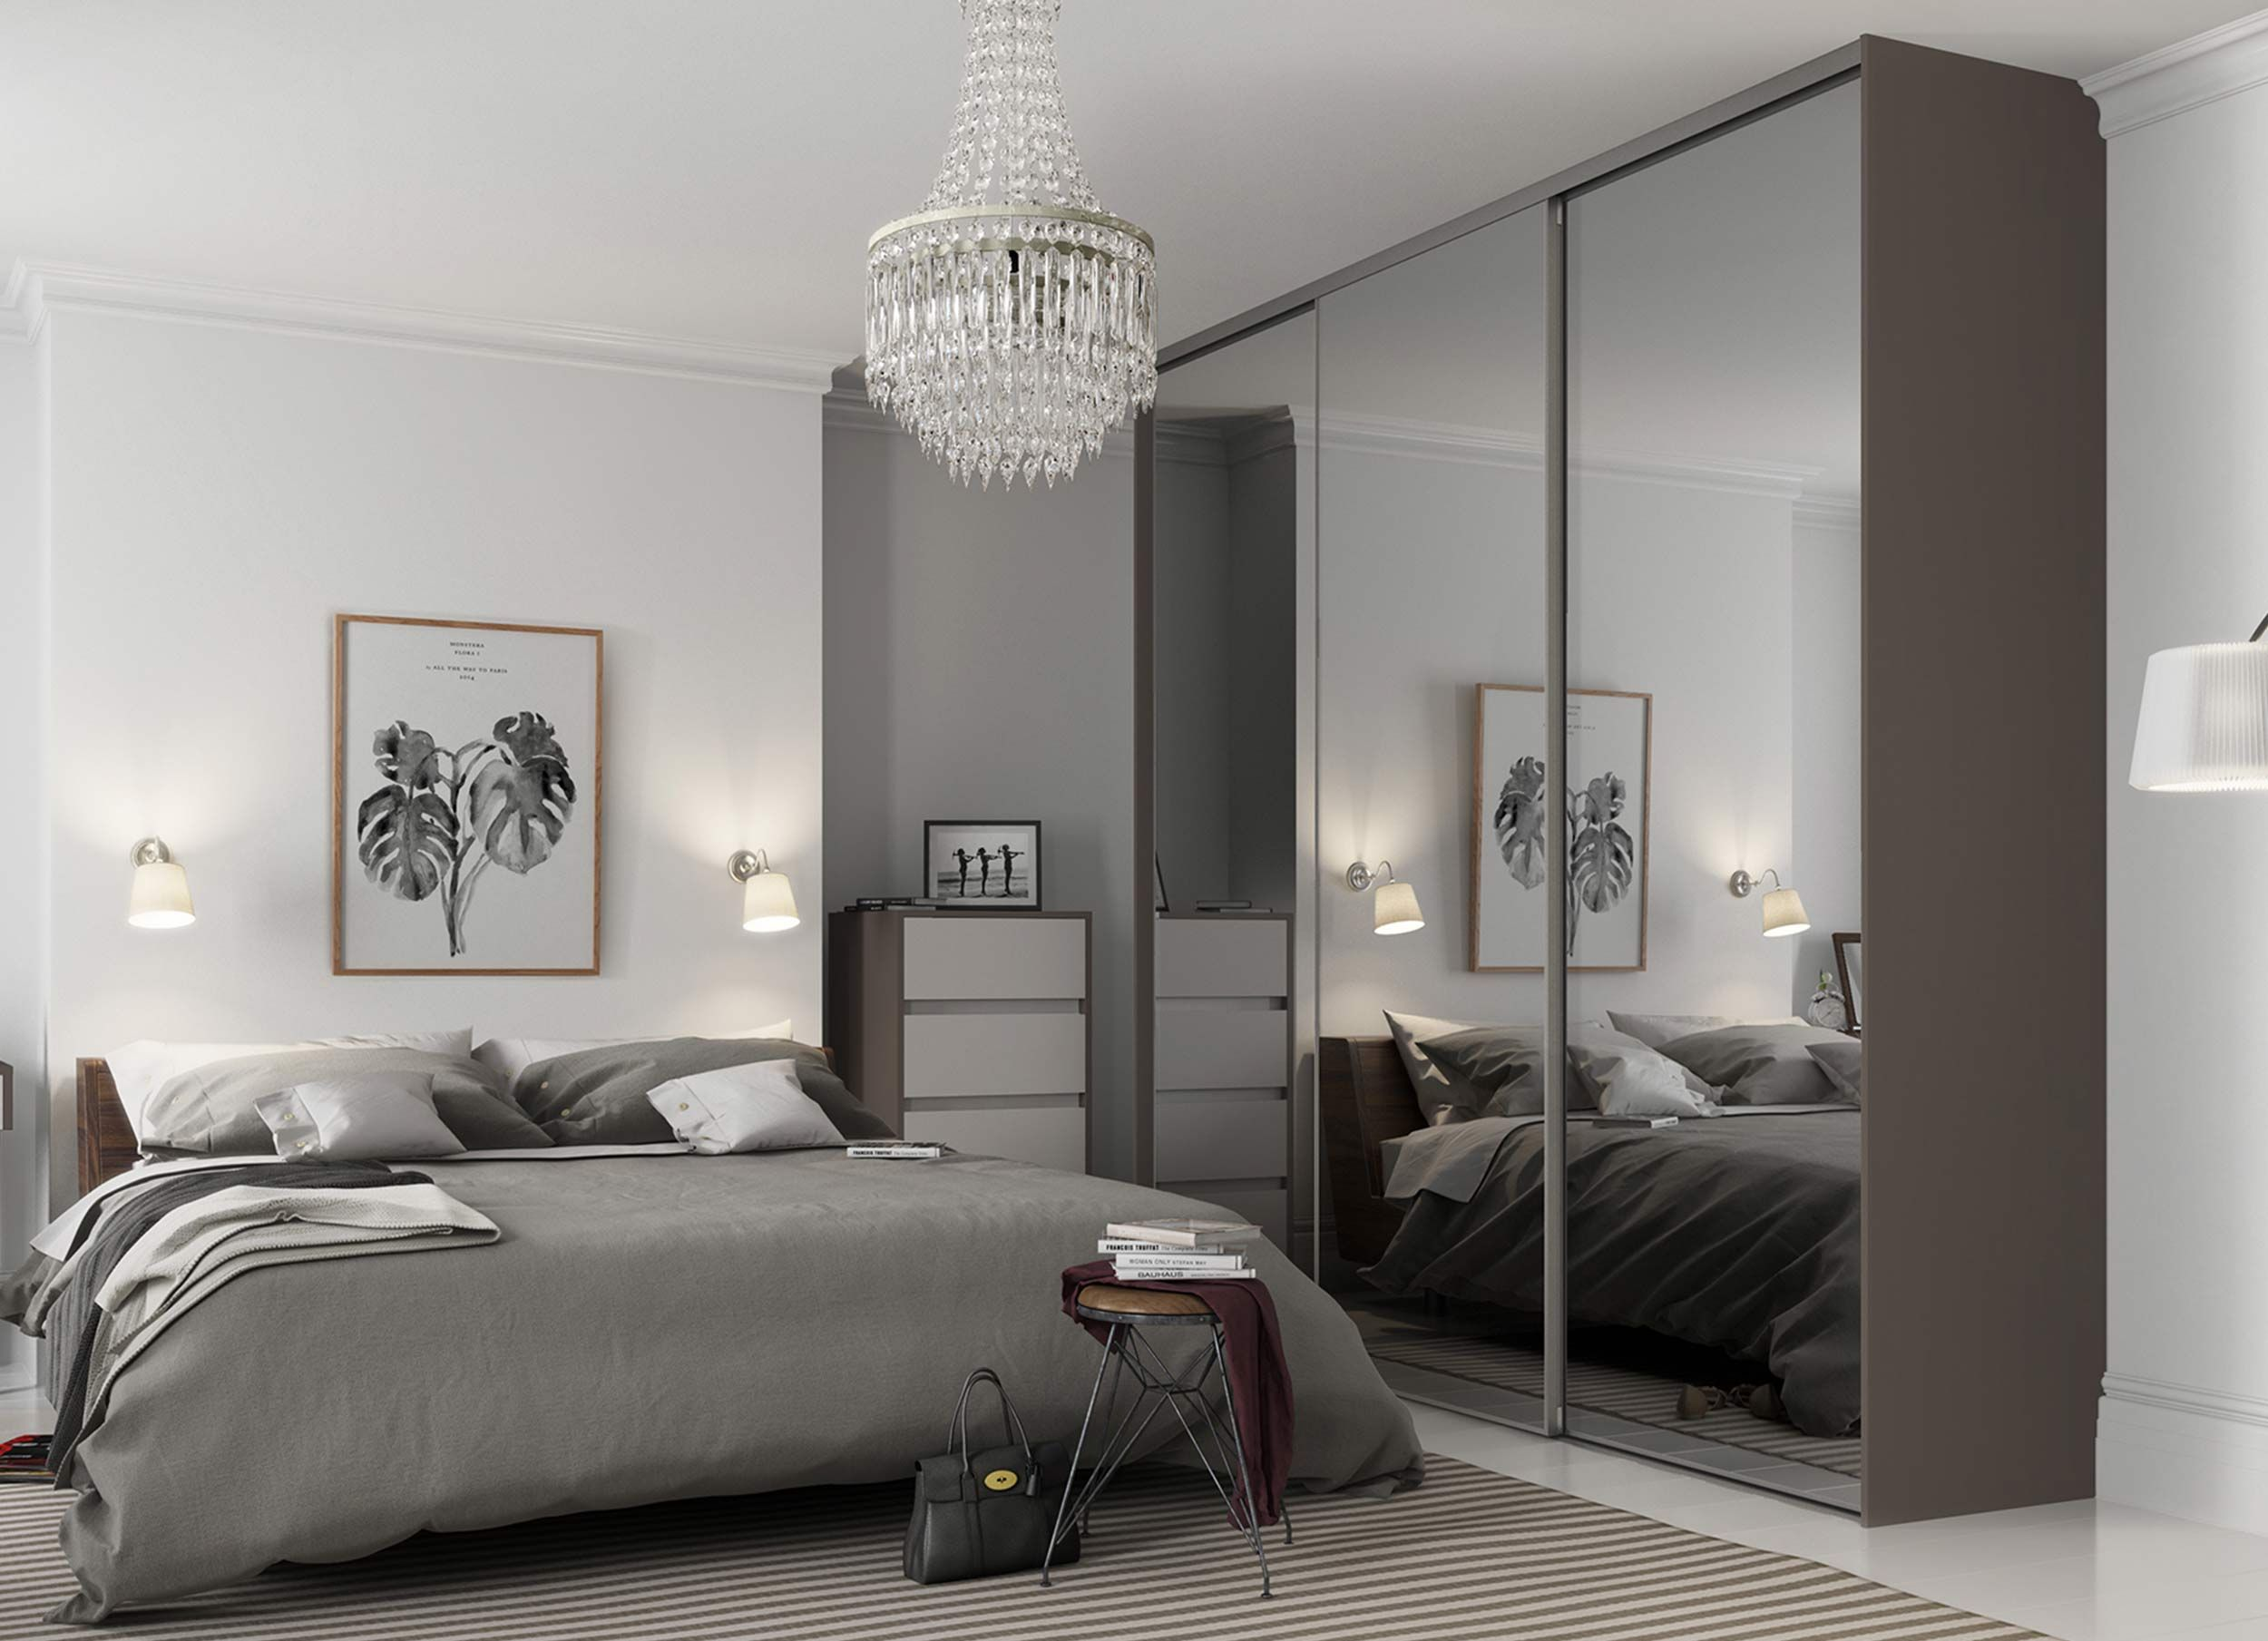 floor to ceiling mirrors can help to open up your bedroom